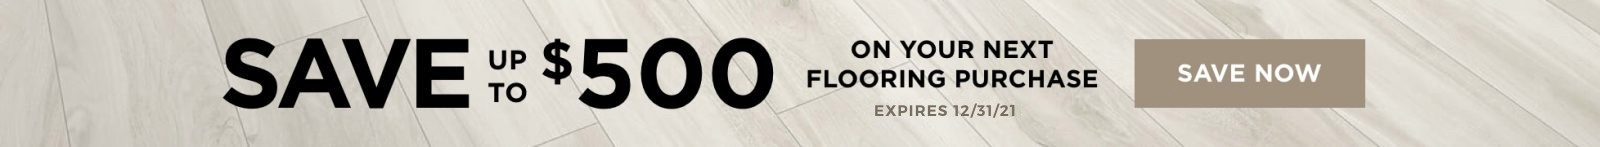 Save Up To $500 Coupon | Macco's Floor Covering Center